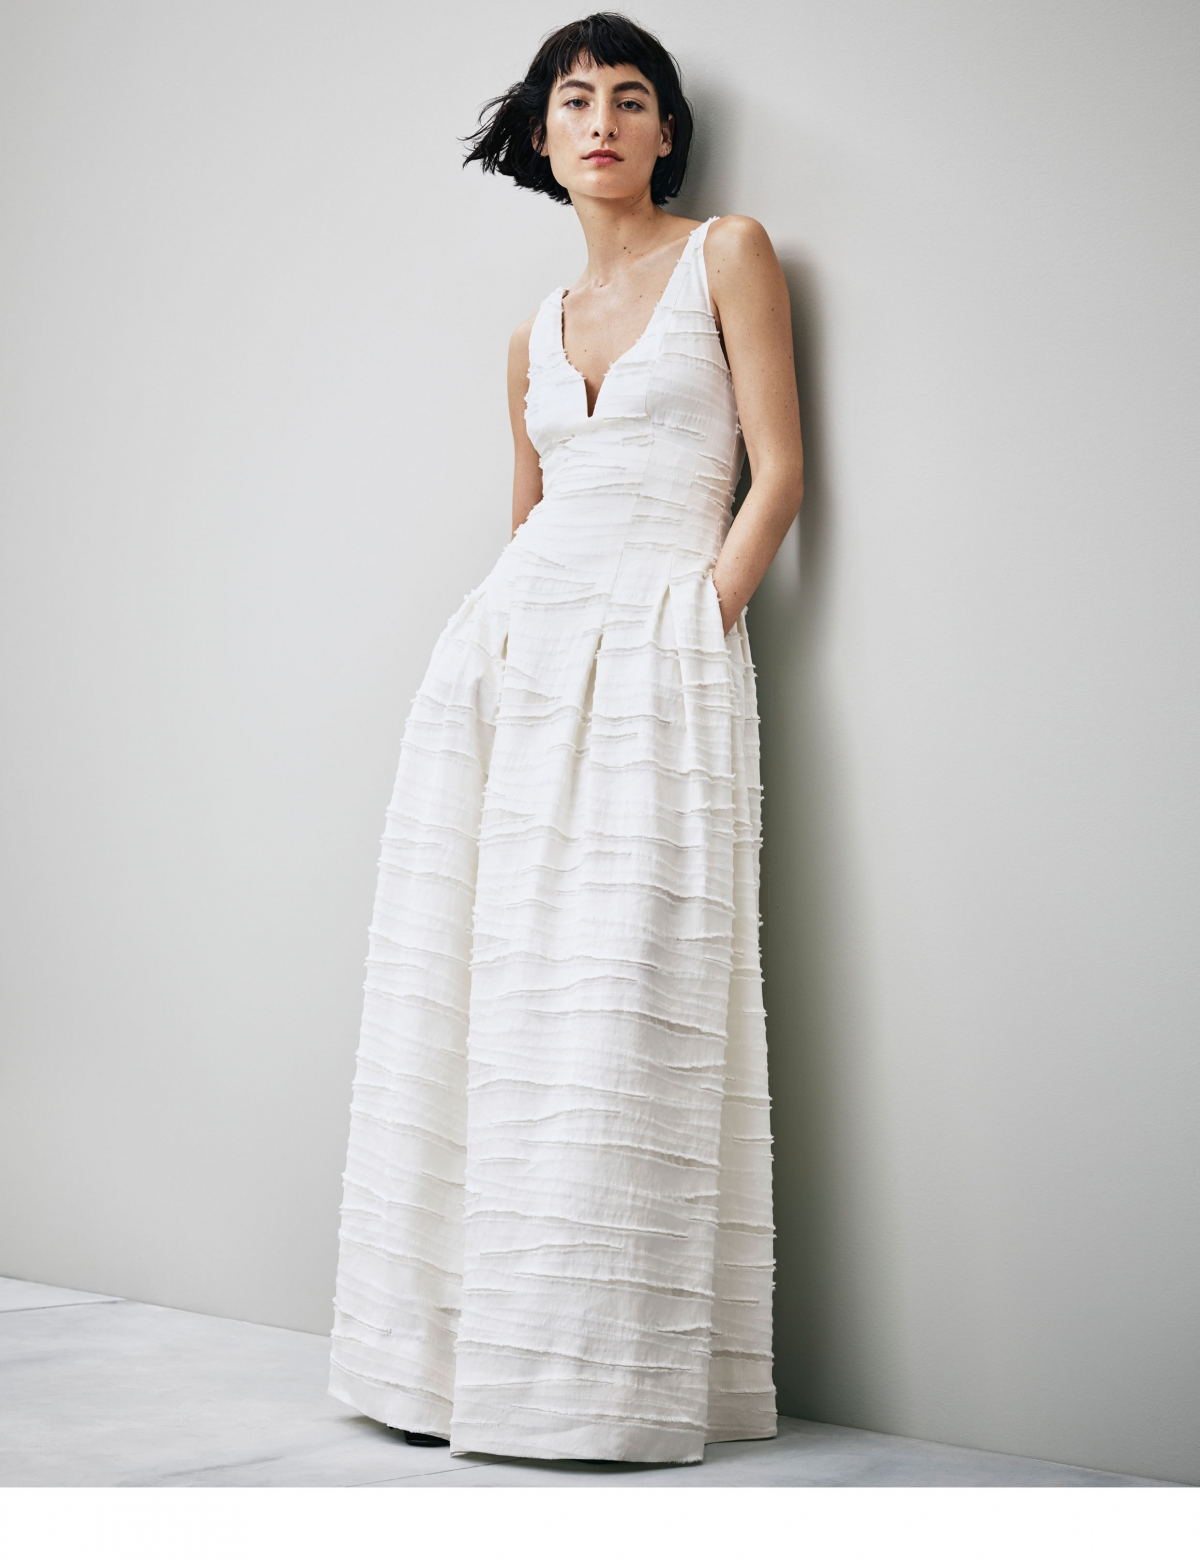 H&M launches new Eco collection with wedding dresses from £150